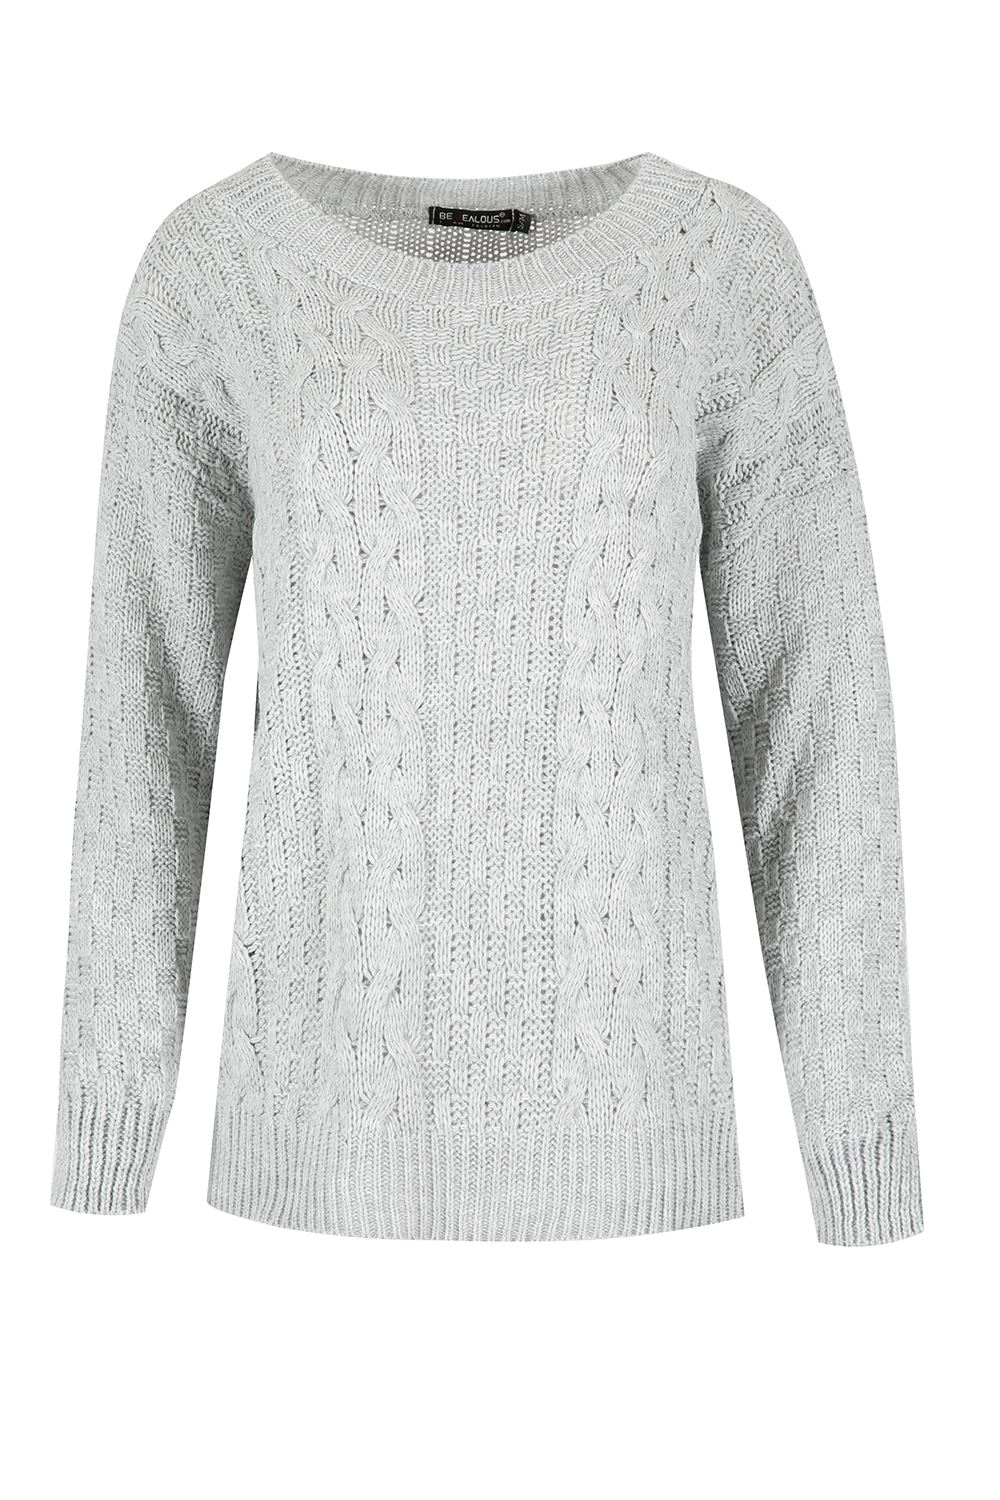 Womens Ladies Grid Chunky Knit Cable Knitted Round Neck Oversized Baggy Jumpe...